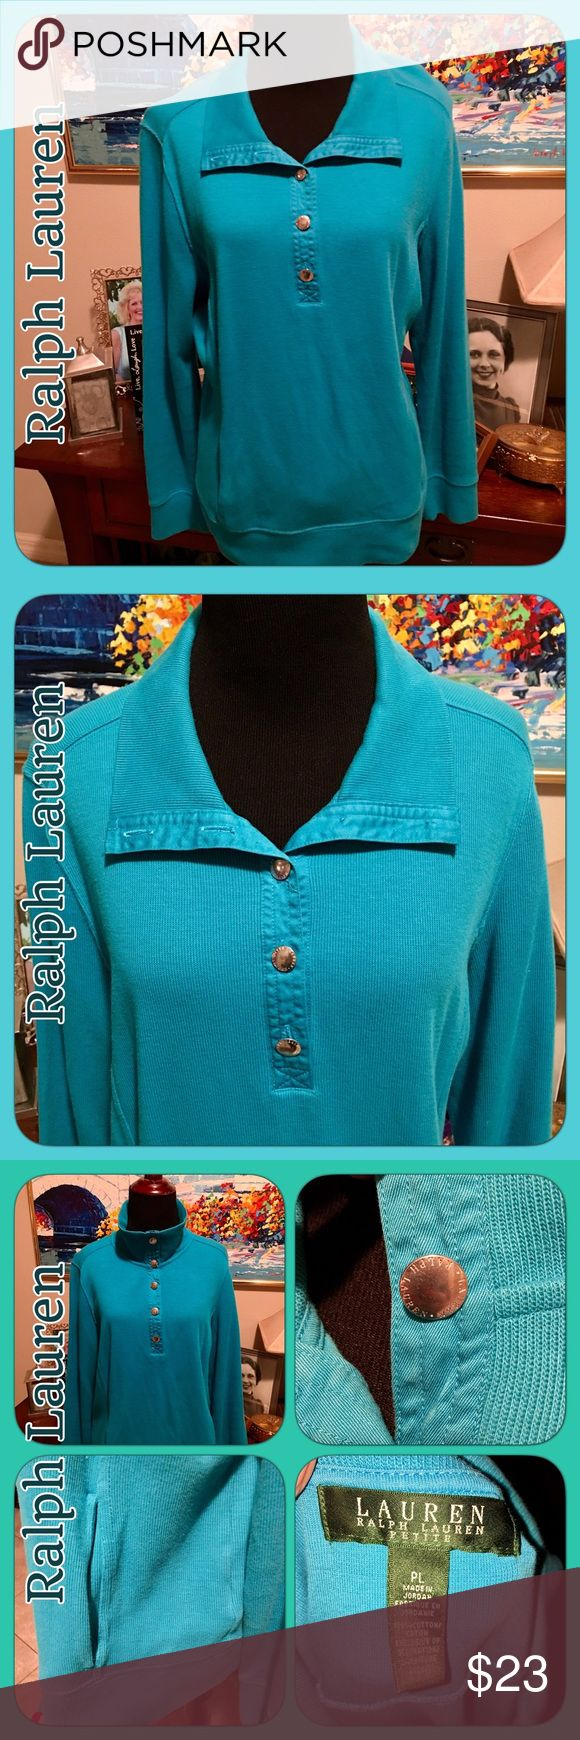 Lauren Ralph Lauren Pullover Top Large Petite Turquoise/Teal Lauren Ralph Lauren Pullover sweatshirt with button top. Button part way & have a lay down collar or all the way for a stand up turtleneck look. This is a petite large. I wear a regular large & still fits me ok, just a little shorter than a regular. EUC. No flaws! Very pretty color! Looks even better in person. Buttons have Ralph Lauren written on them. Lauren Ralph Lauren Tops Sweatshirts & Hoodies